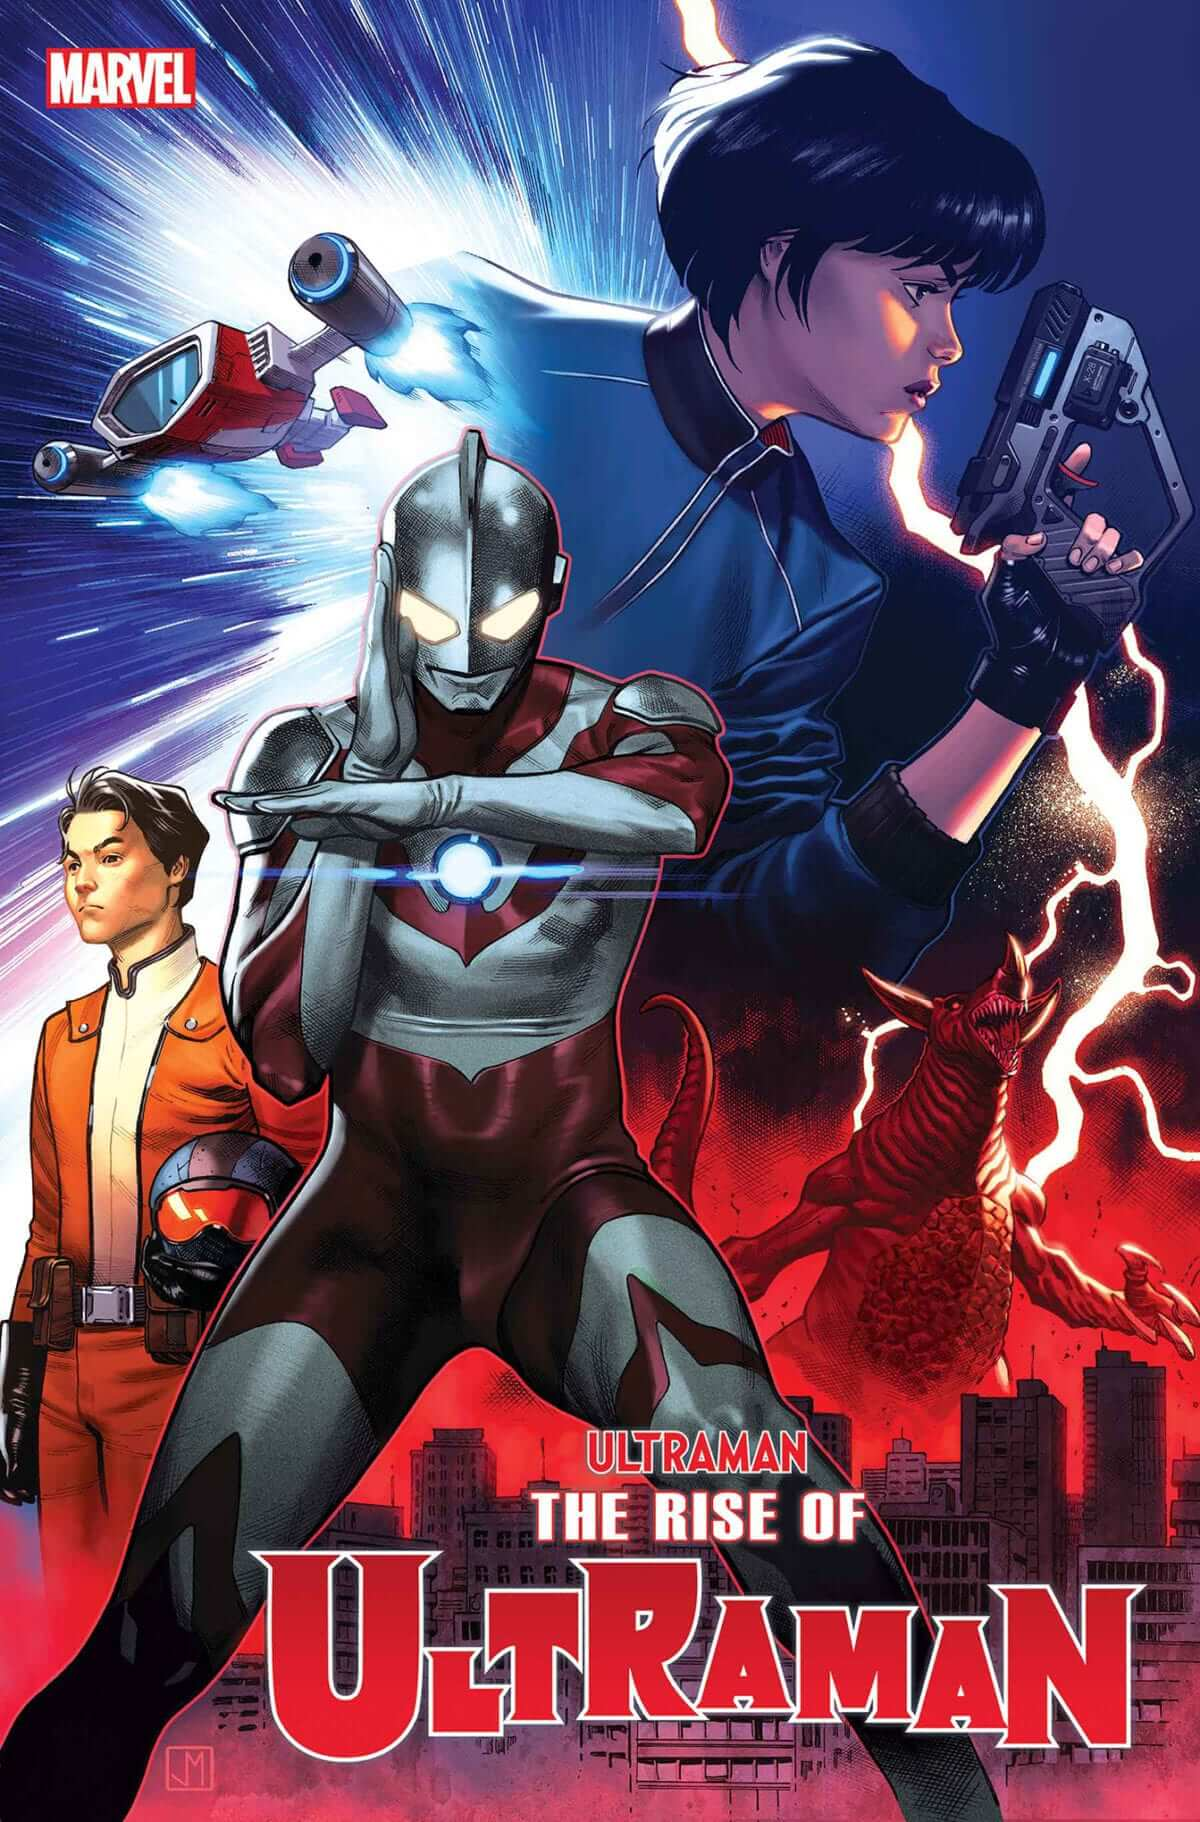 MARVEL'S RISE OF ULTRAMAN #2  ALL COVERS REVEALED